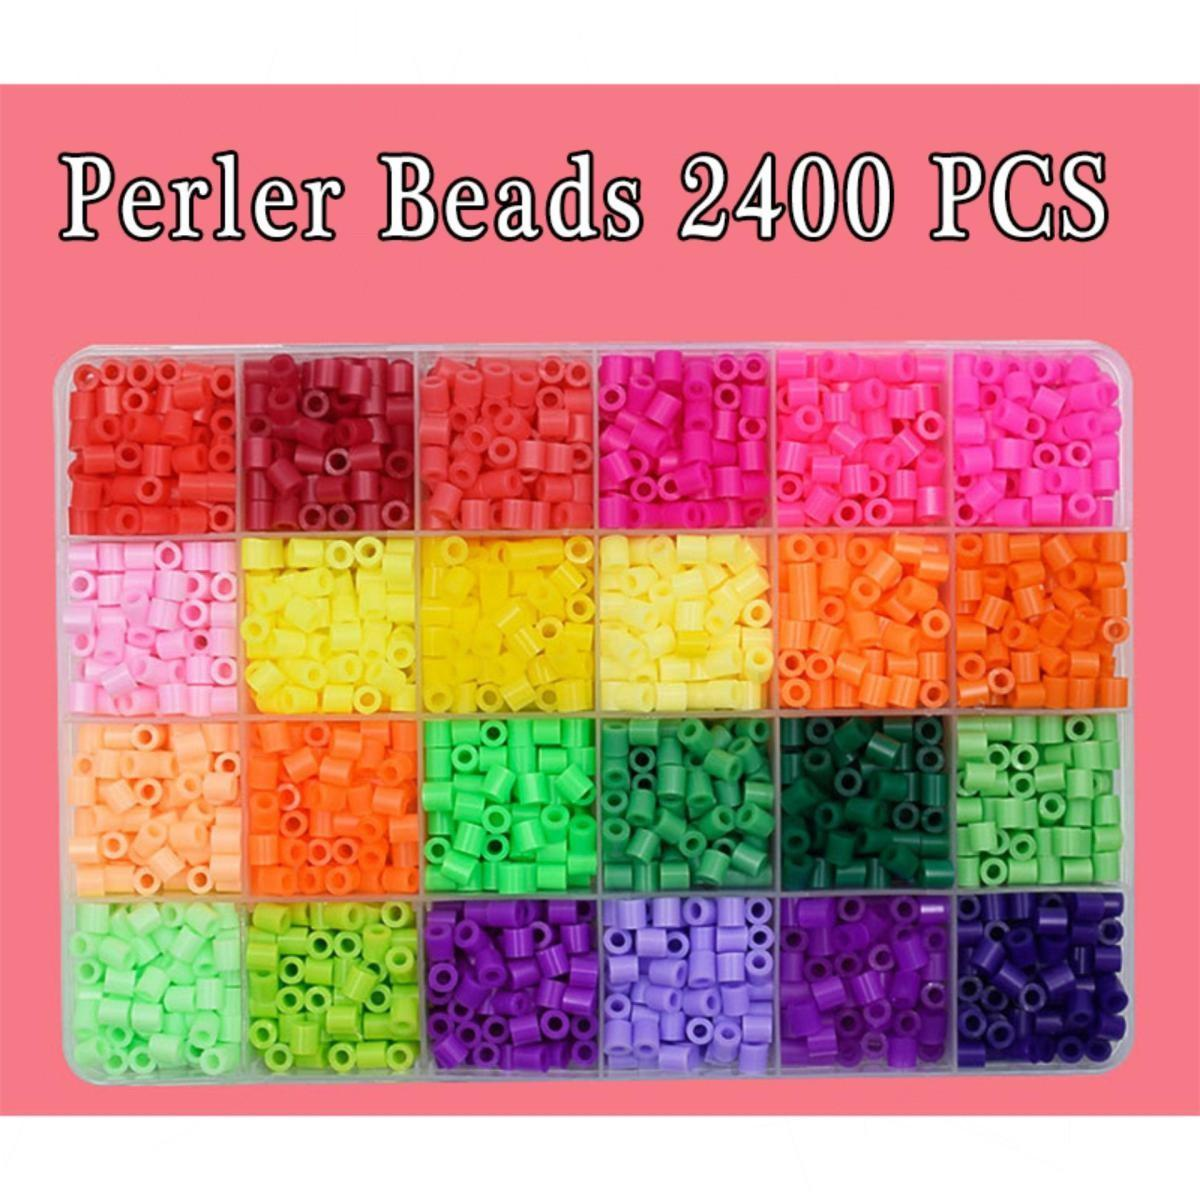 Perler Beads Fused Bead Kit 2400 Beads Craft Beads For Kids By Tcgbhvkog.